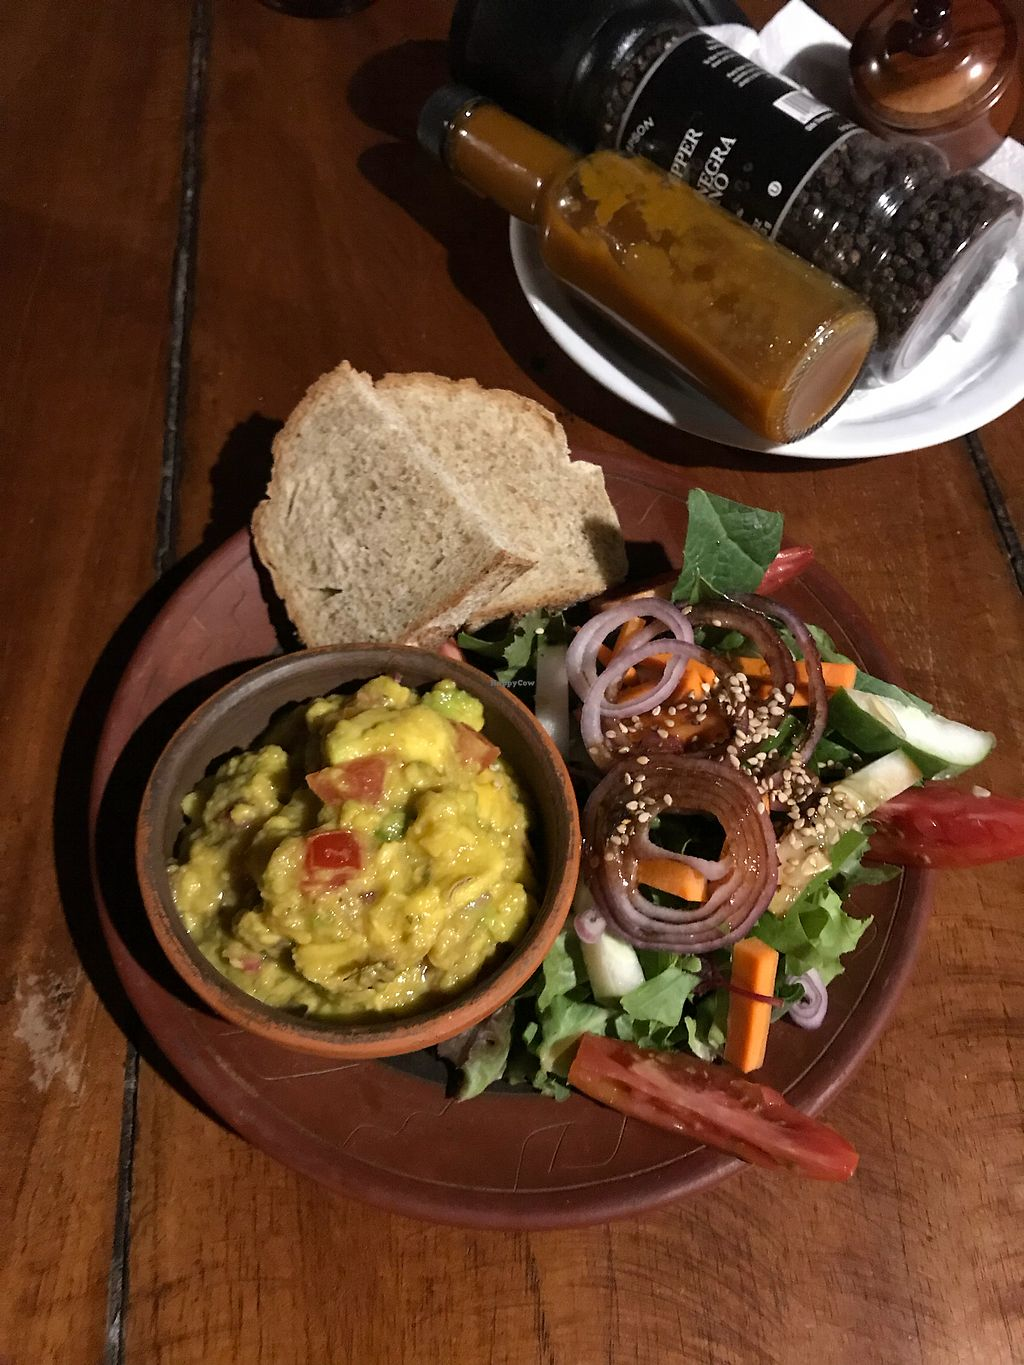 "Photo of Cafe Campestre  by <a href=""/members/profile/IndreArbataityte"">IndreArbataityte</a> <br/>Guacamole  <br/> April 13, 2018  - <a href='/contact/abuse/image/42561/384819'>Report</a>"